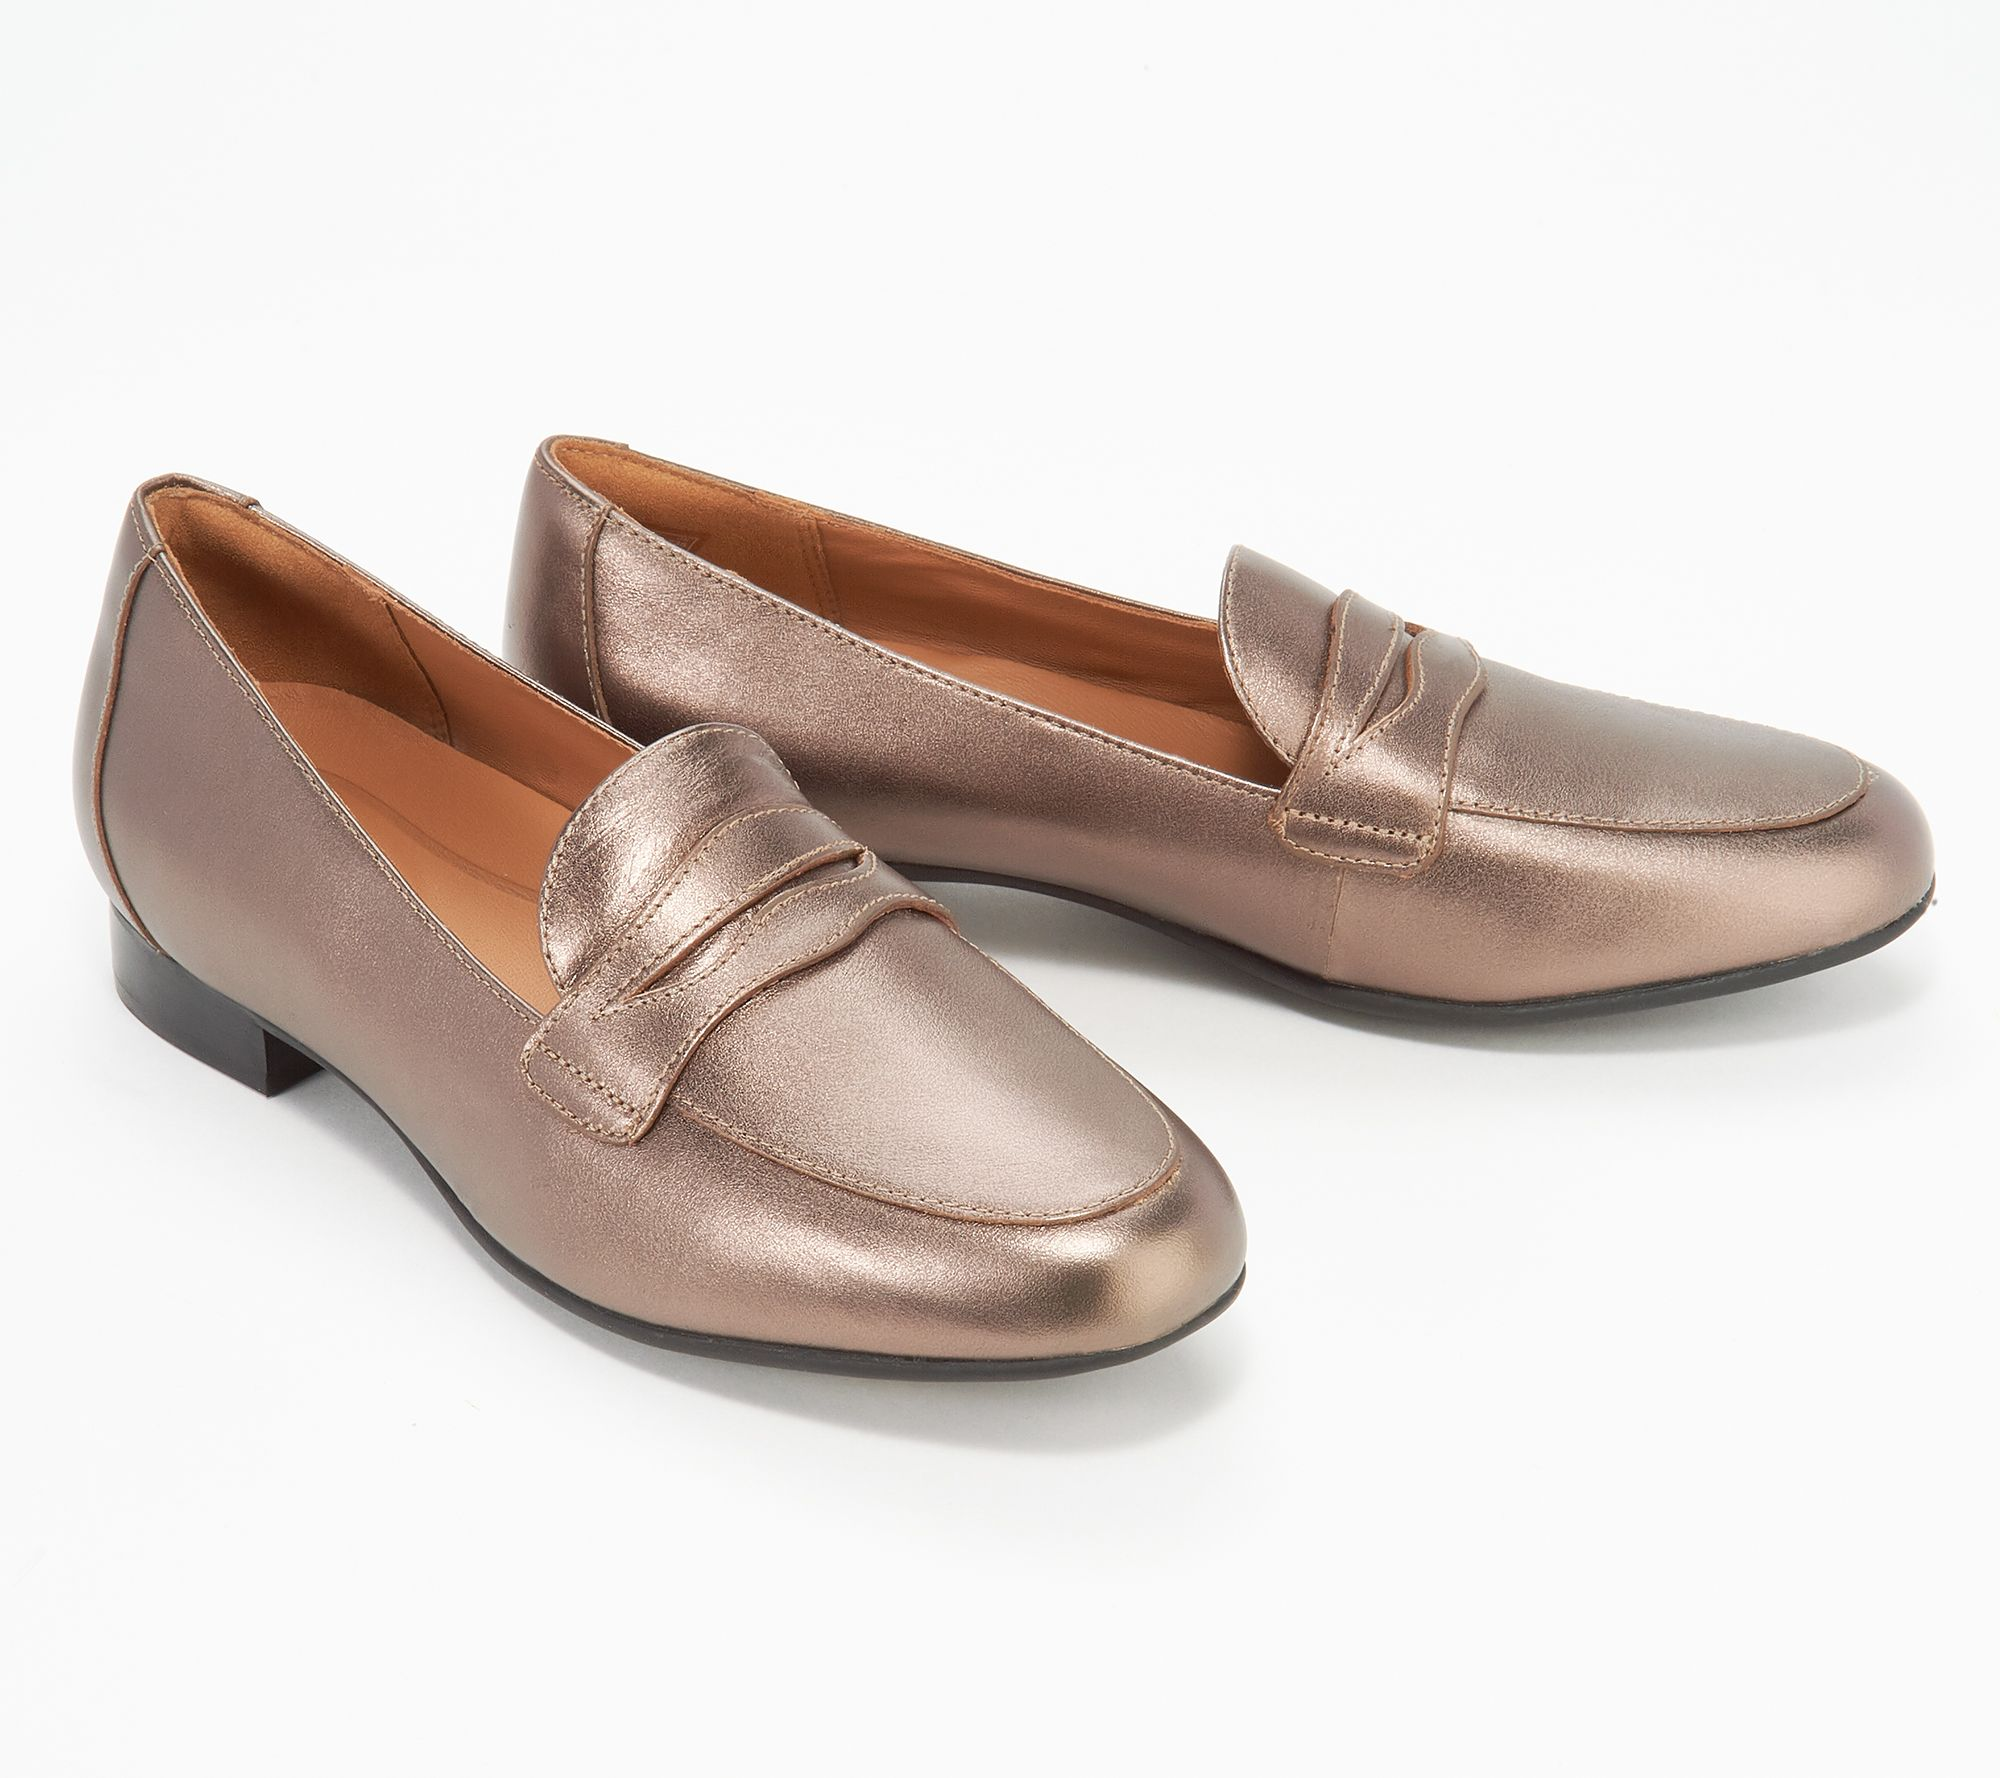 df3e0a32990 Clarks Unstructured Slip-On Penny Loafers - Un Blush Go - Page 1 — QVC.com